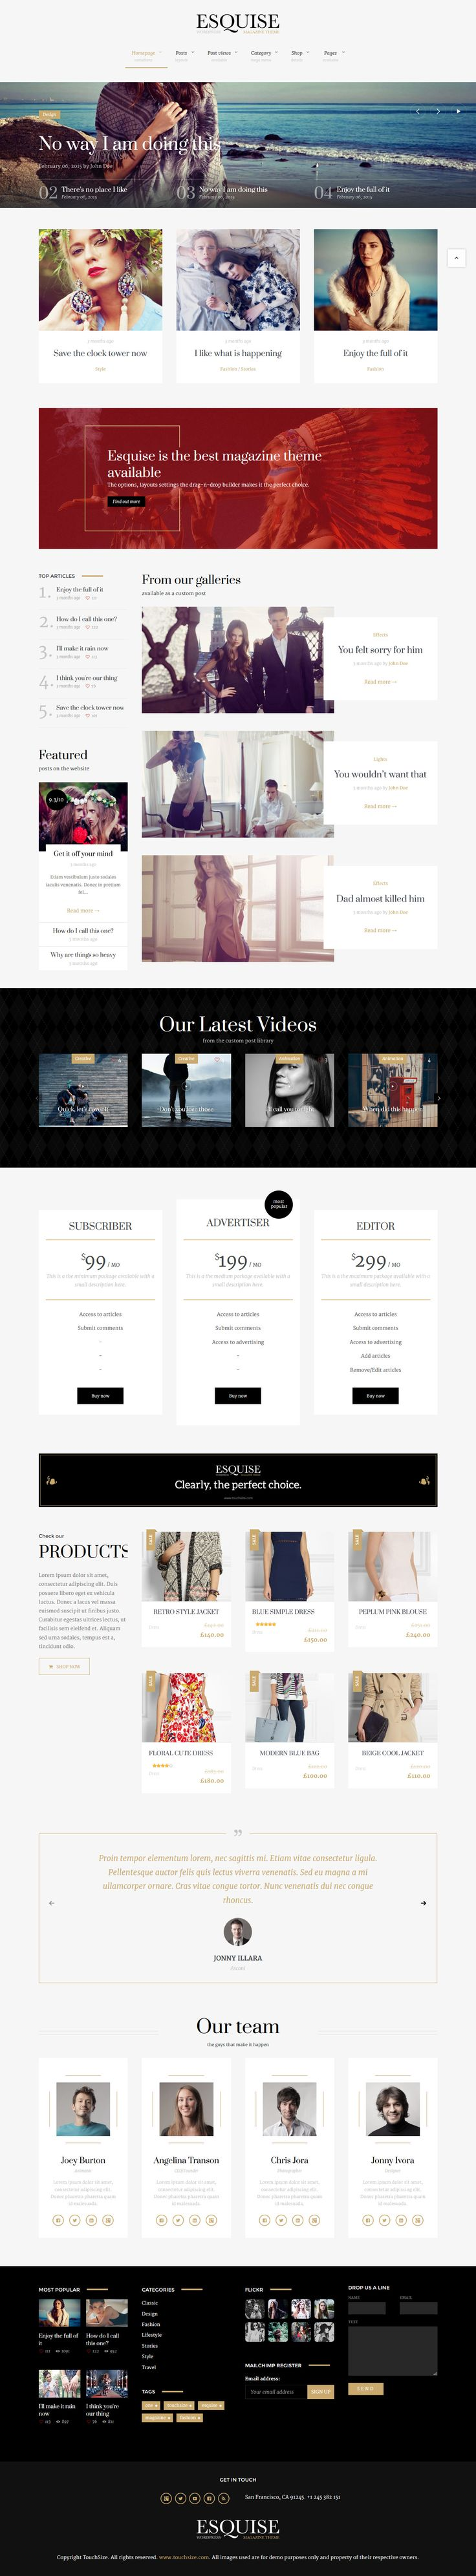 Esquise - Magazine WordPress Theme #web #wp #wordpress Demo and Download: http://ksioks.com/portfolio/esquise-magazine-wordpress-theme/